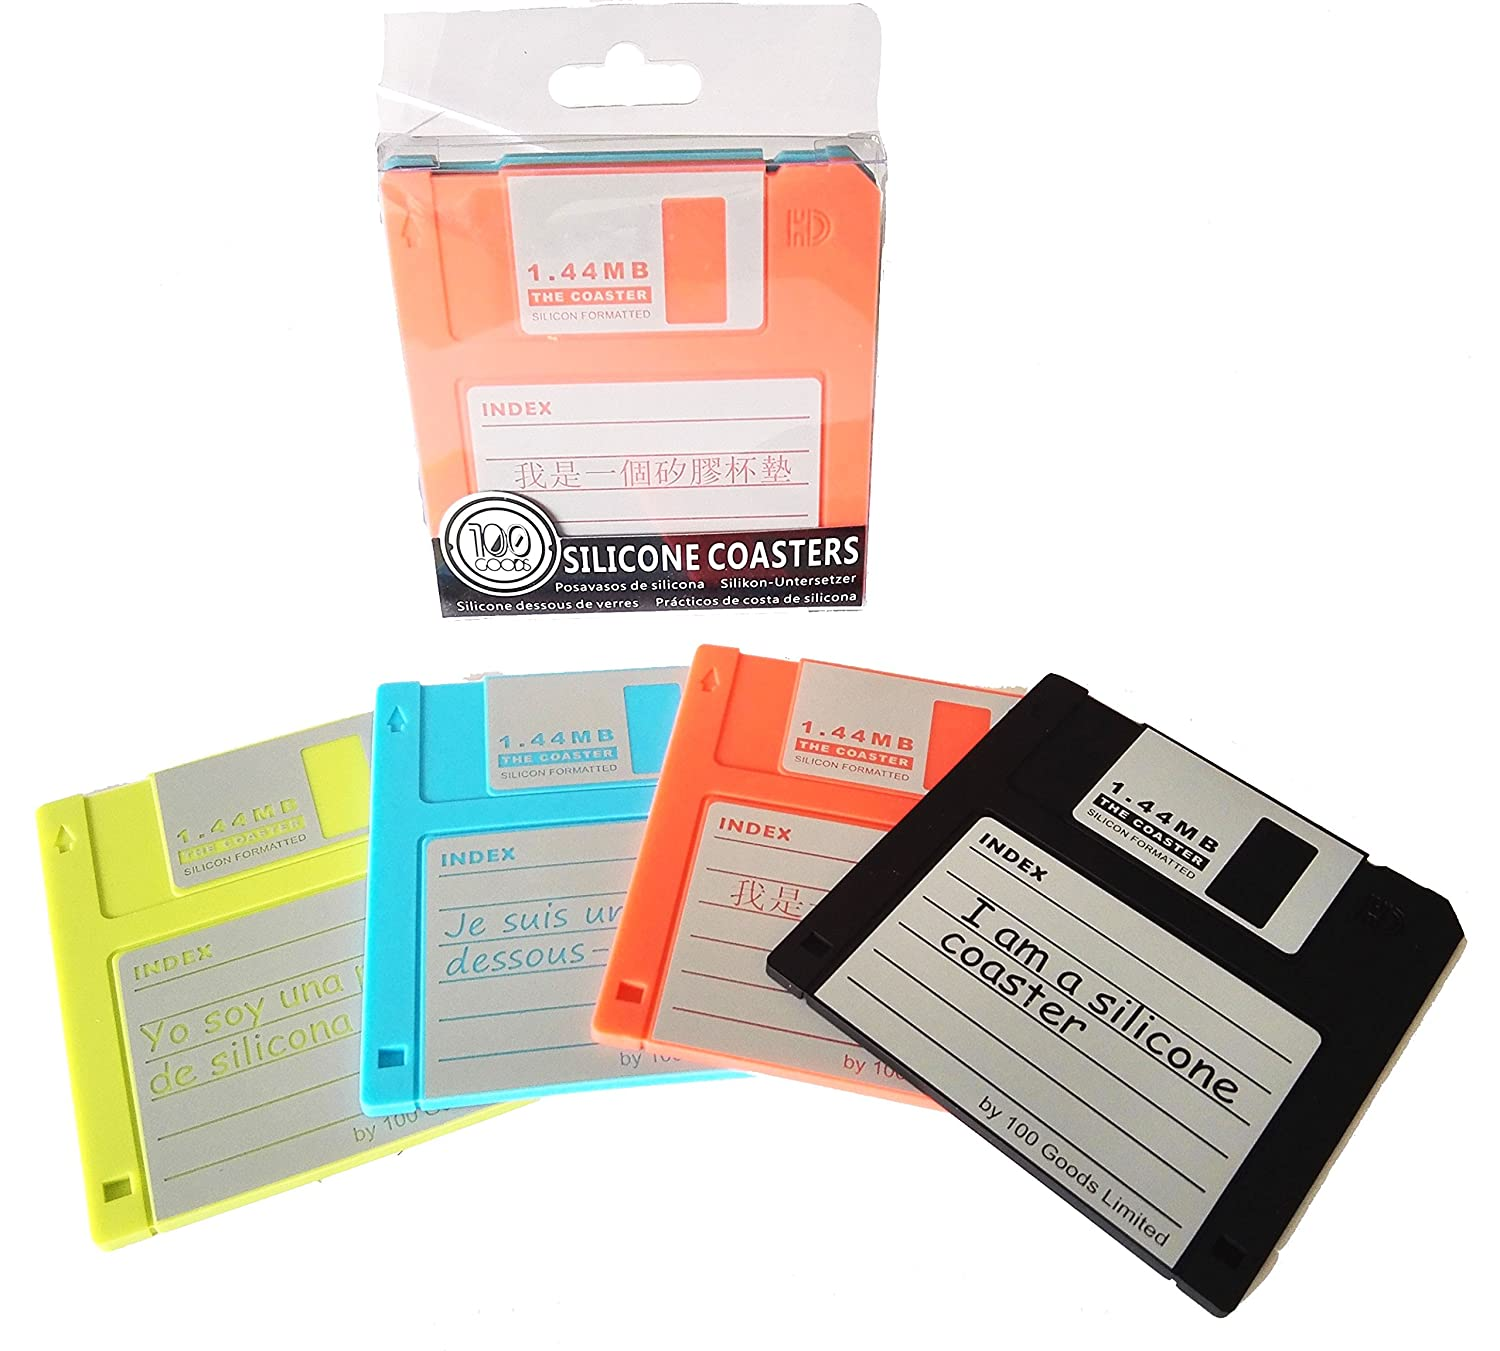 Lot of 100 3.5 inch NON WORKING Used Floppy Disks.